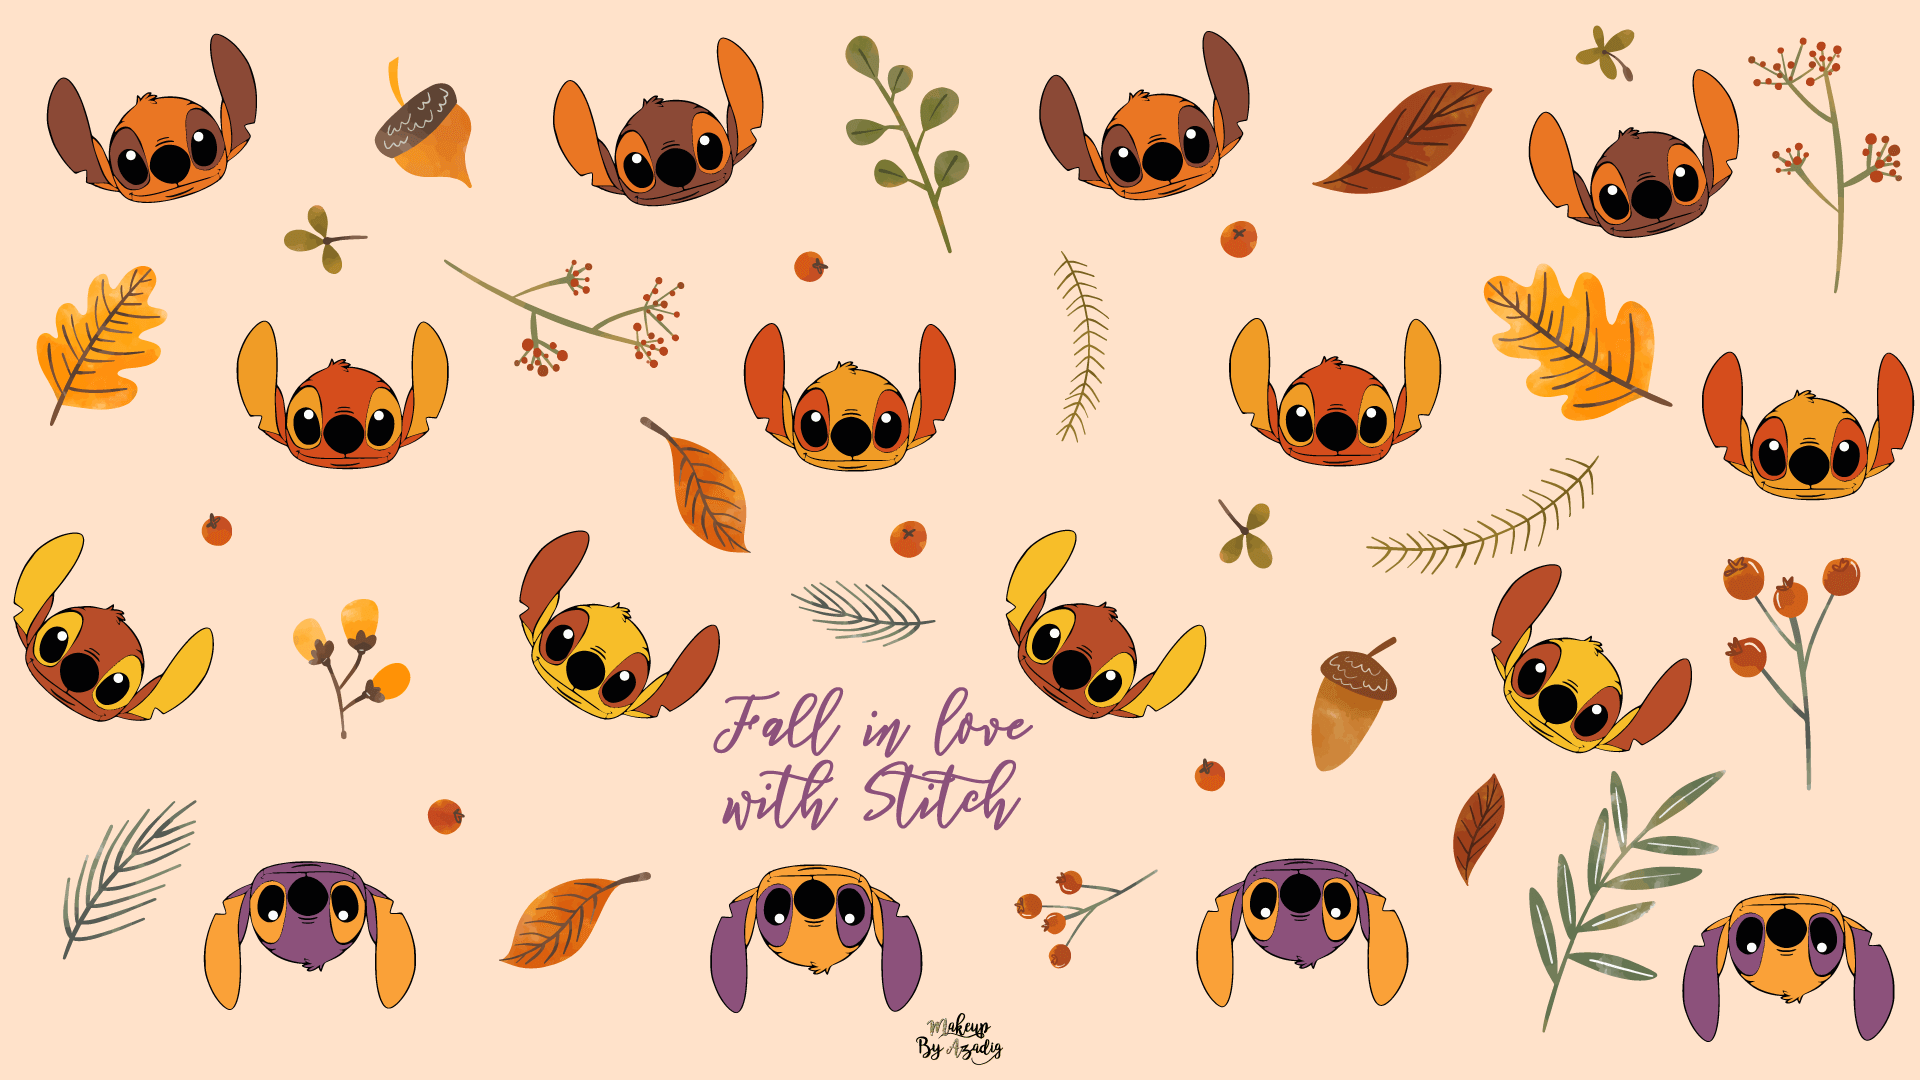 fond-decran-wallpaper-stitch-autumn-automne-fallinlove-disney-ordinateur-mac-macbook-imac-pc-makeupbyazadig-tendance